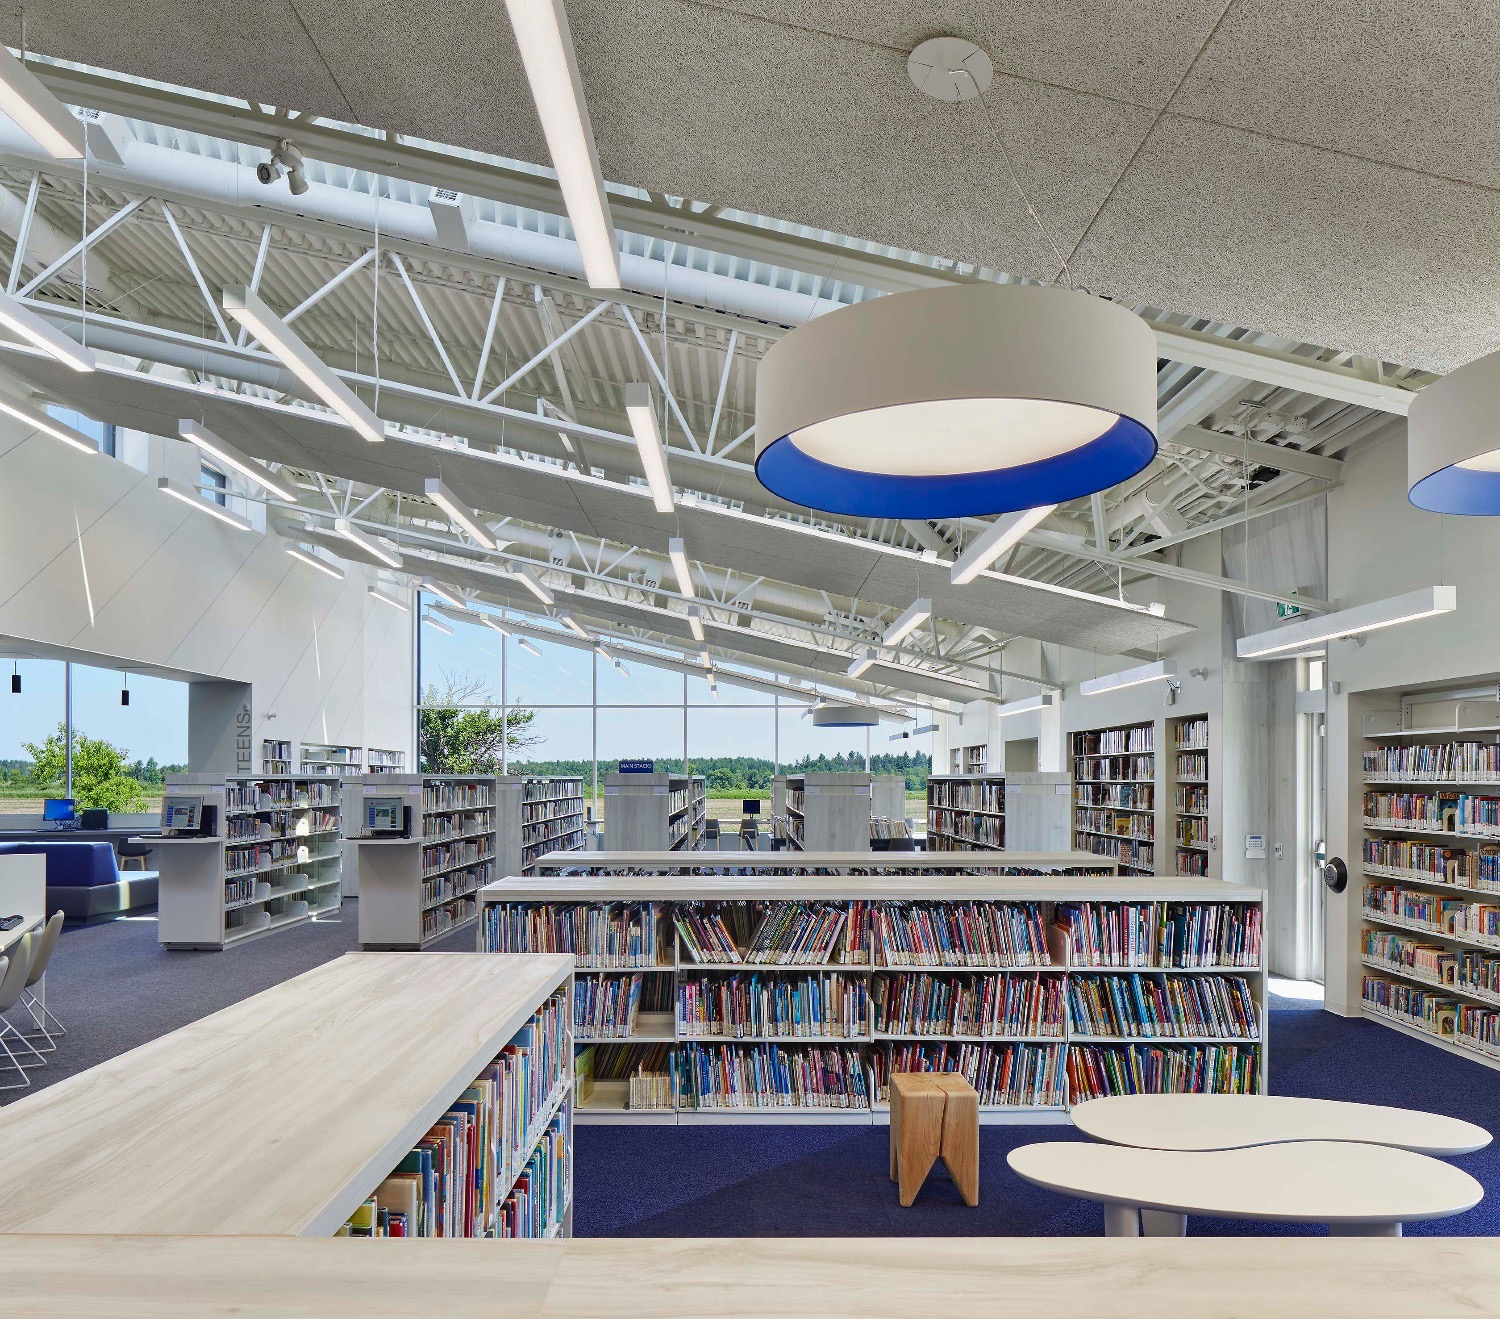 2021 OLA Library Architectural and Design Transformation Award Winners Announced